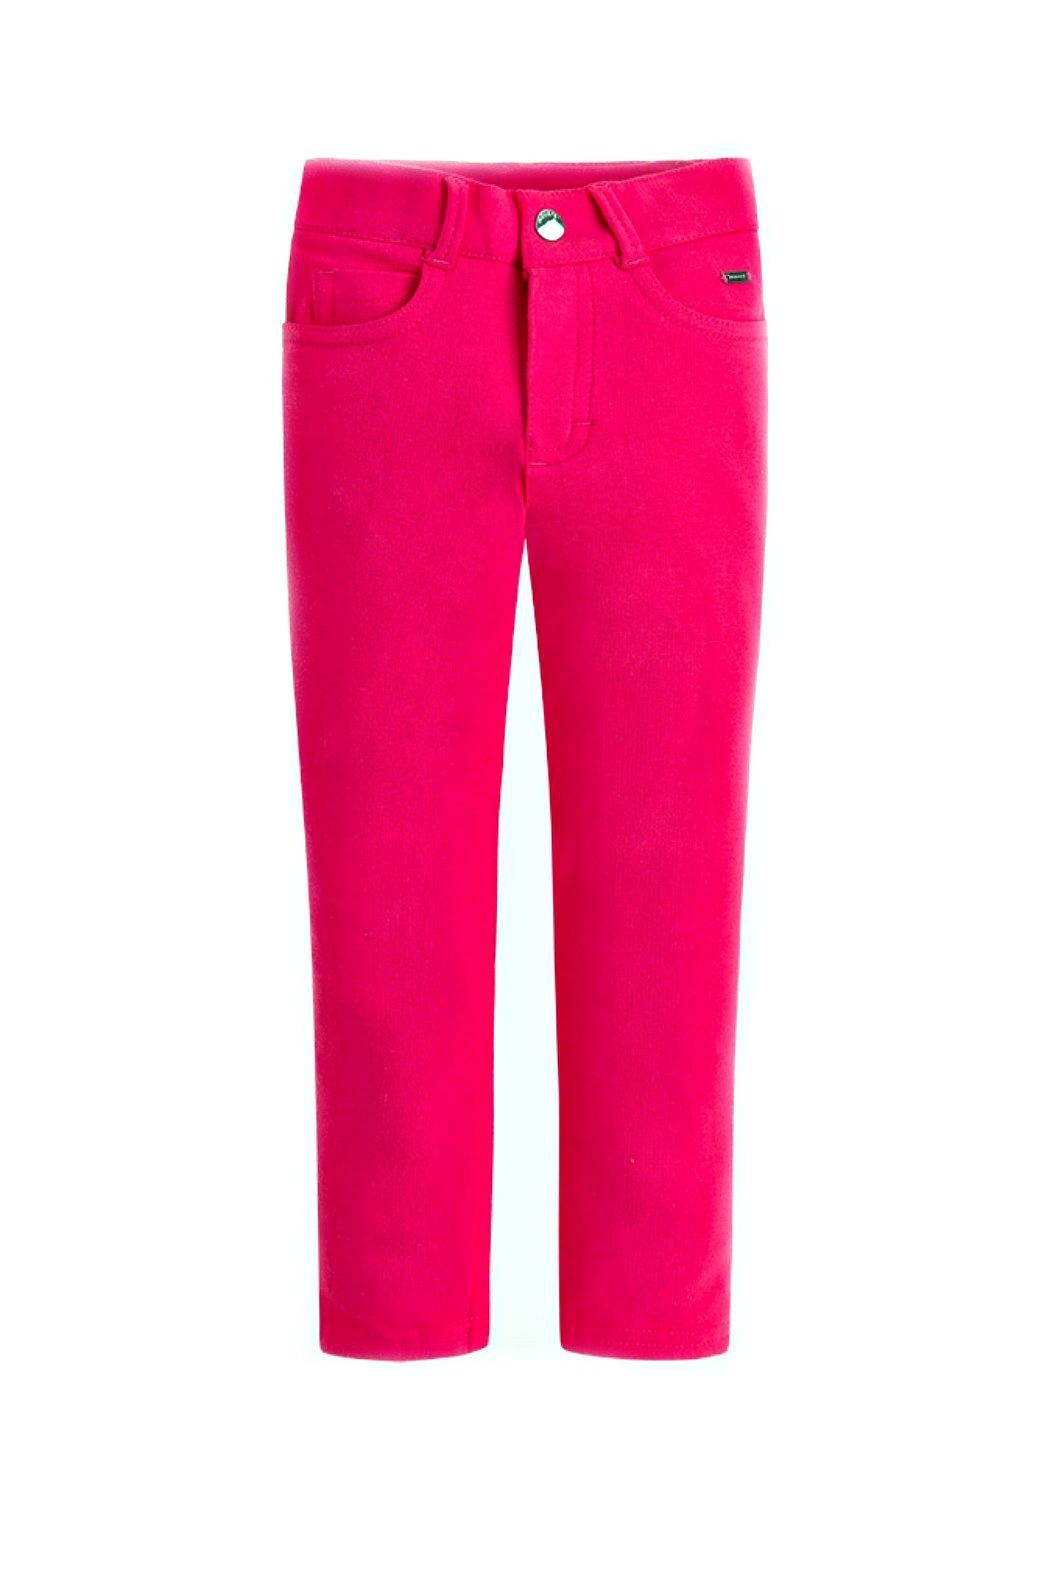 Mayoral Girls Super-Skinny-Magenta-Jeggings - Main Image